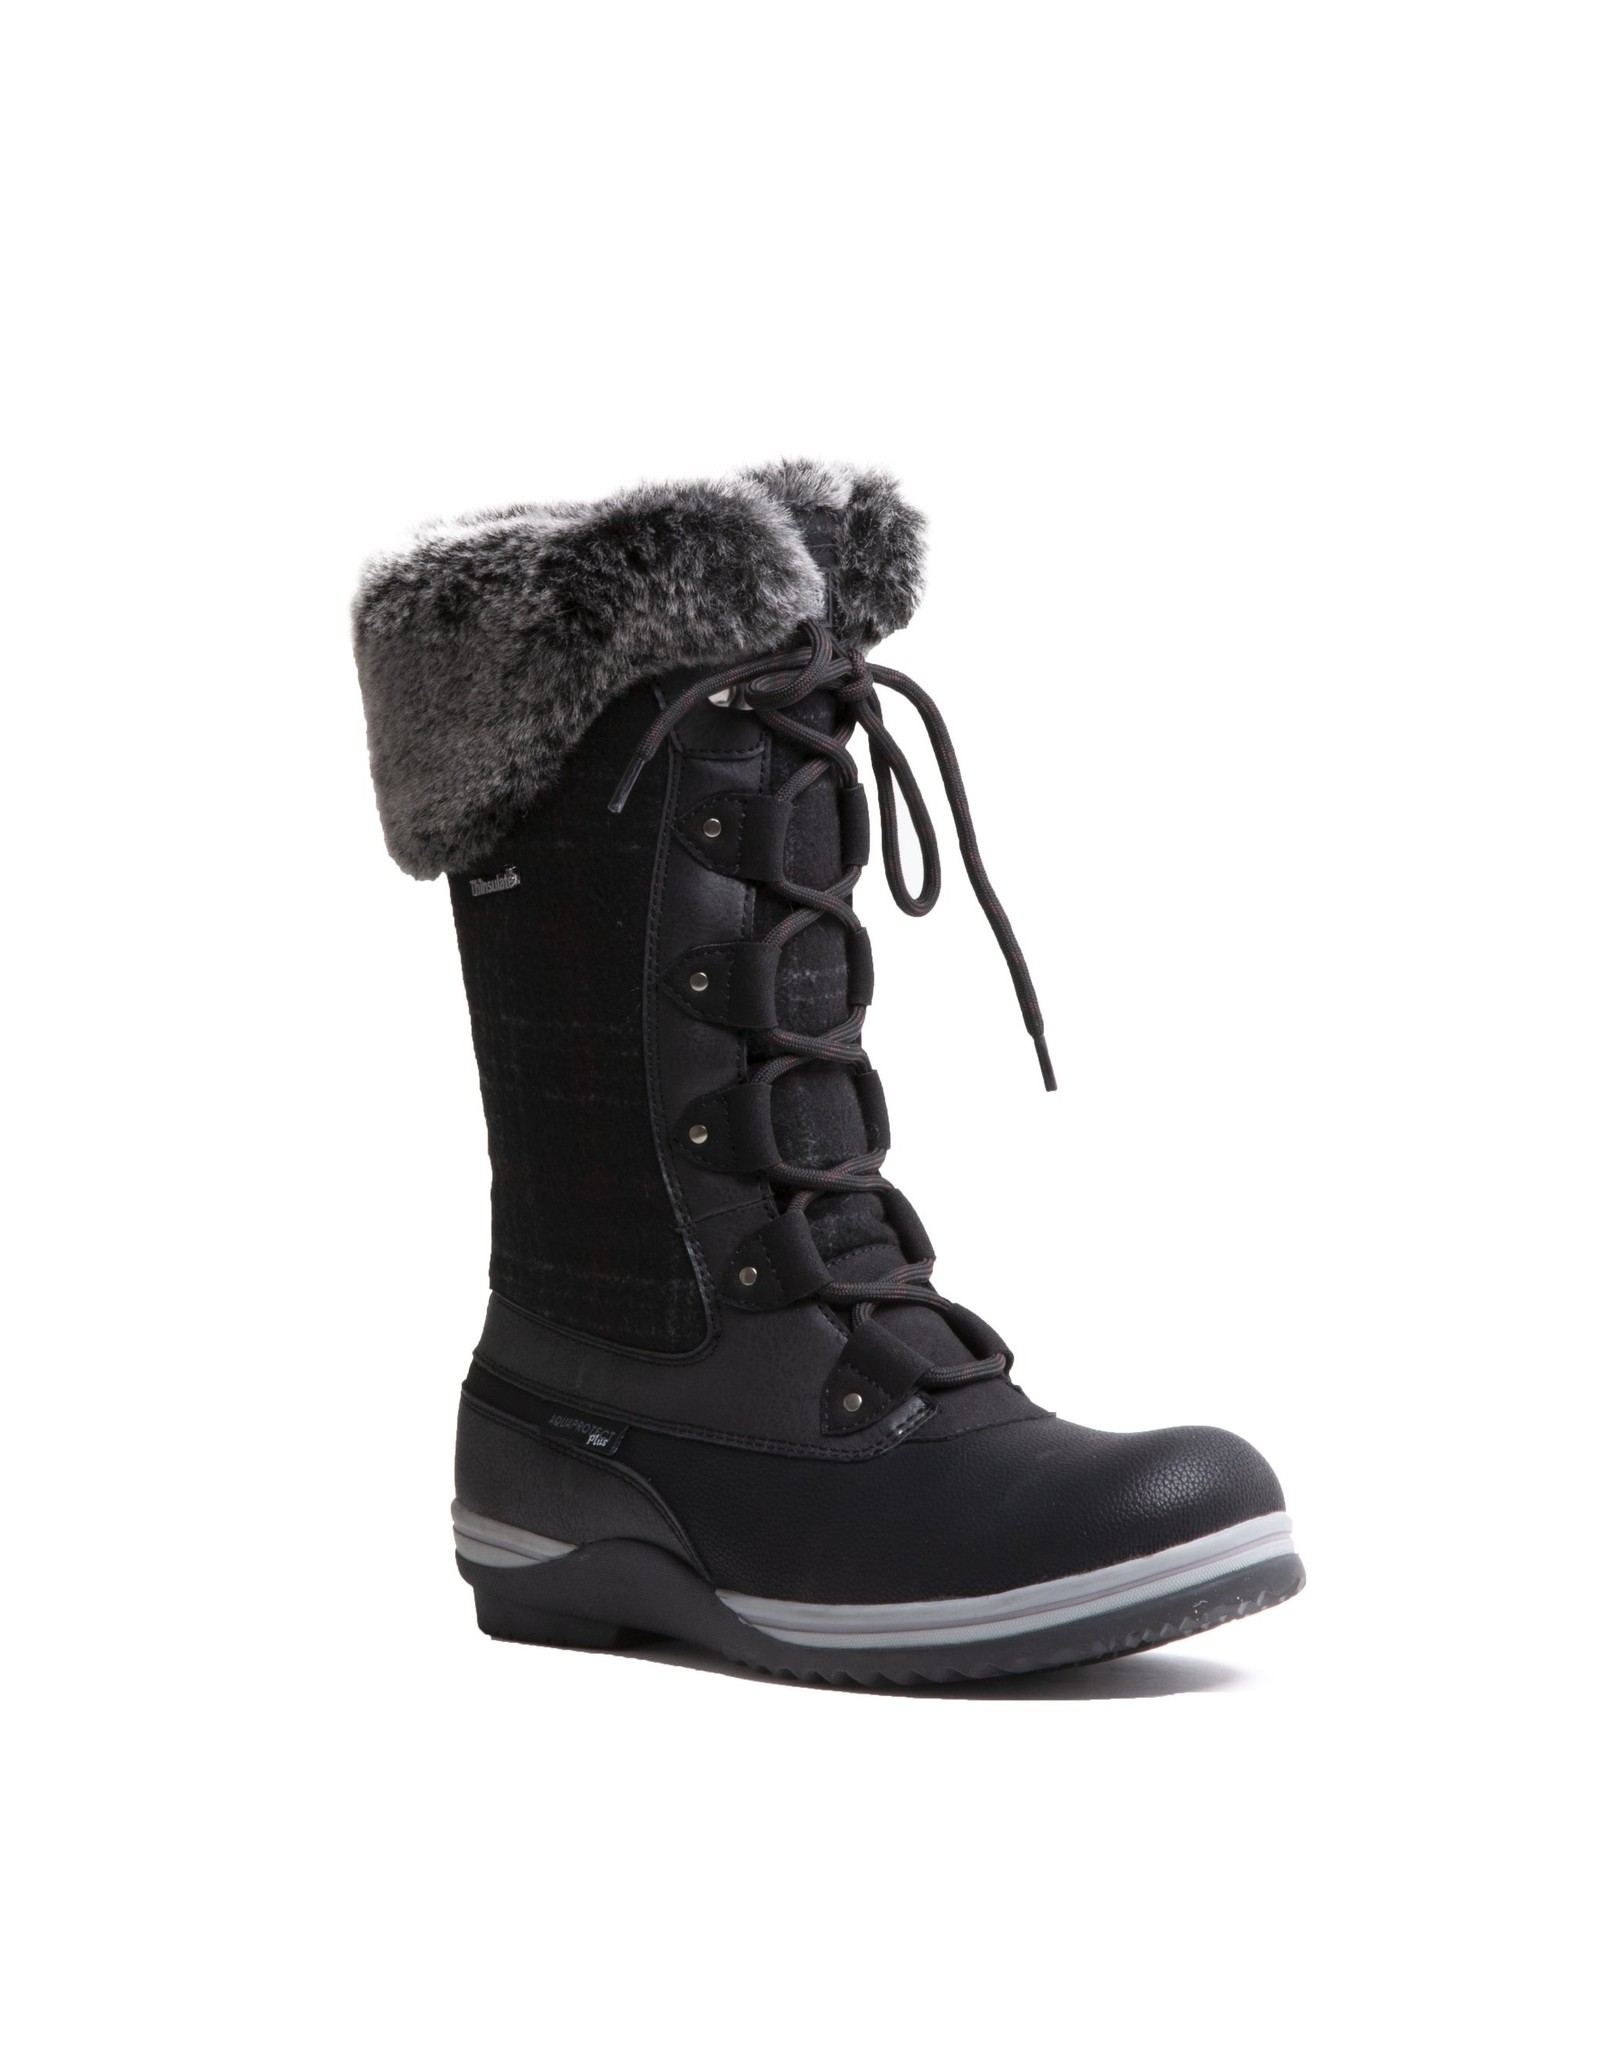 BLONDO SAMUELA BLACK  WINTER BOOT LADIES